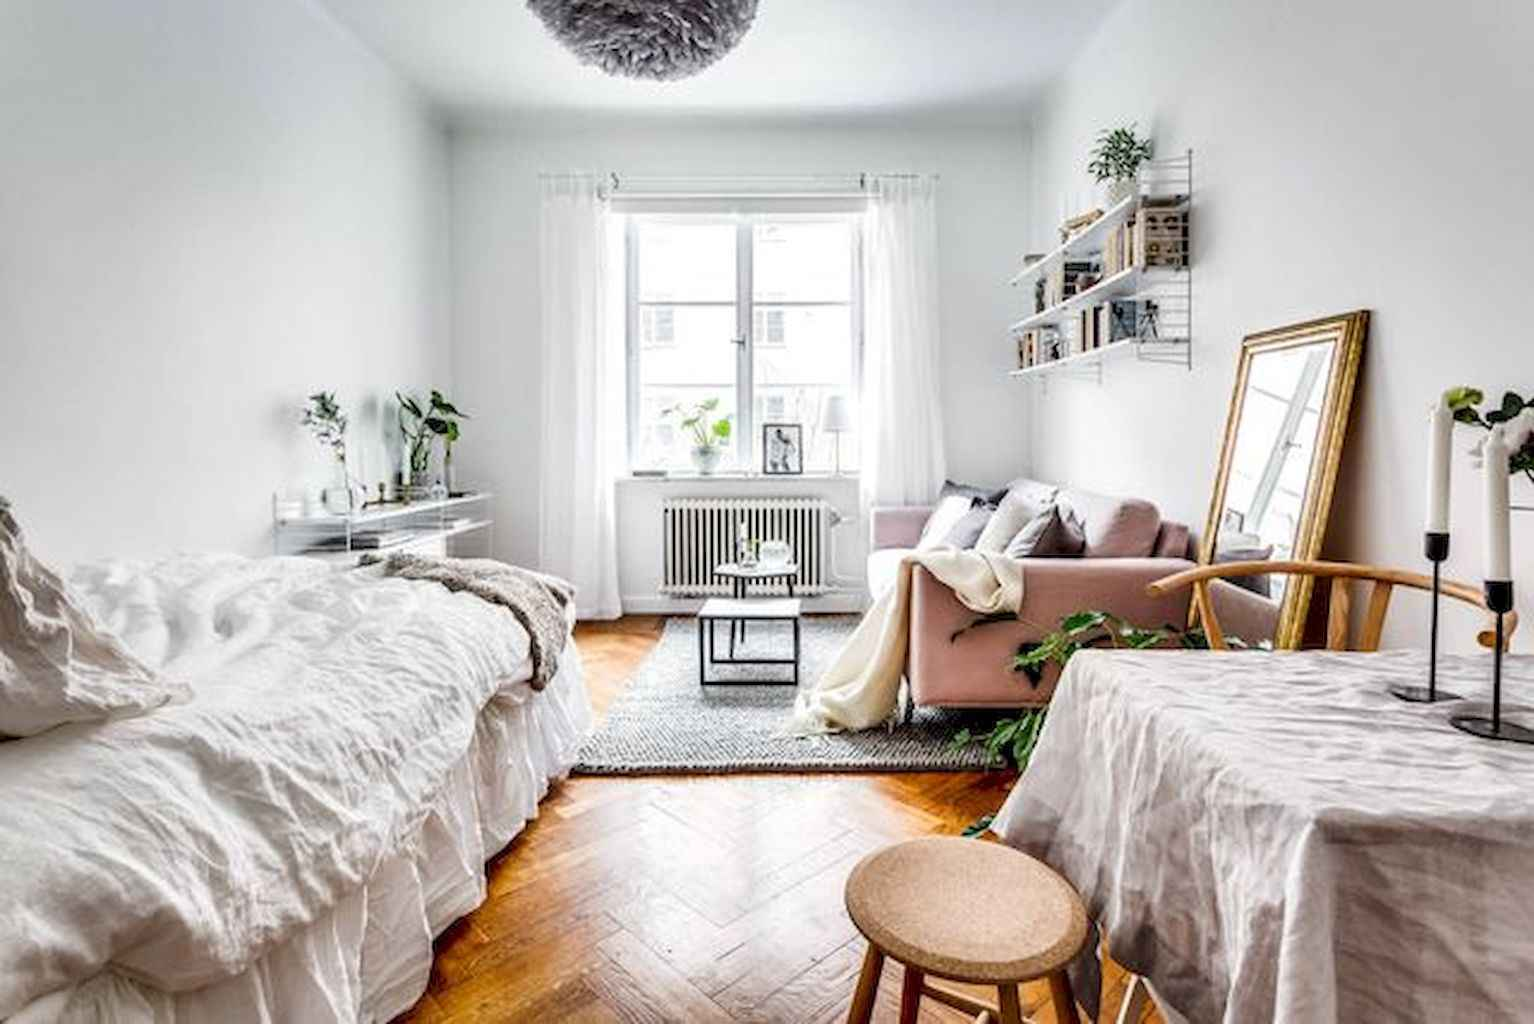 Cool small apartment decorating ideas on a budget (38)